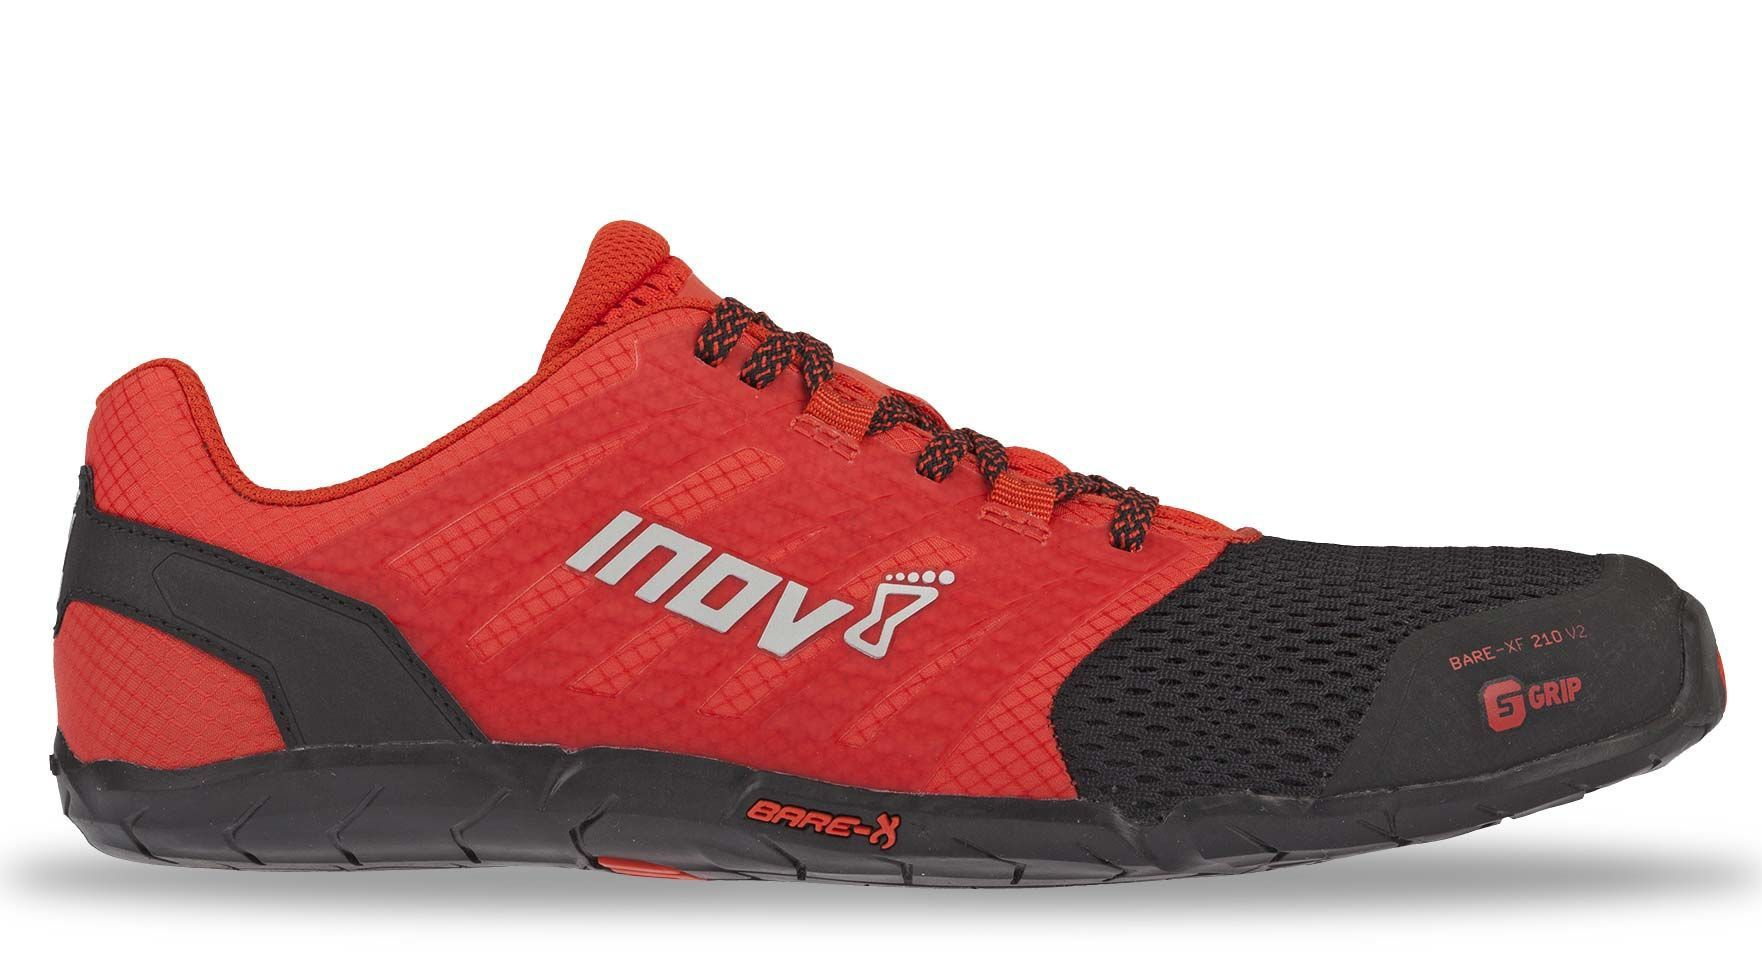 outlet store 82f3f b3042 Inov-8 Bare-XF 210 V2